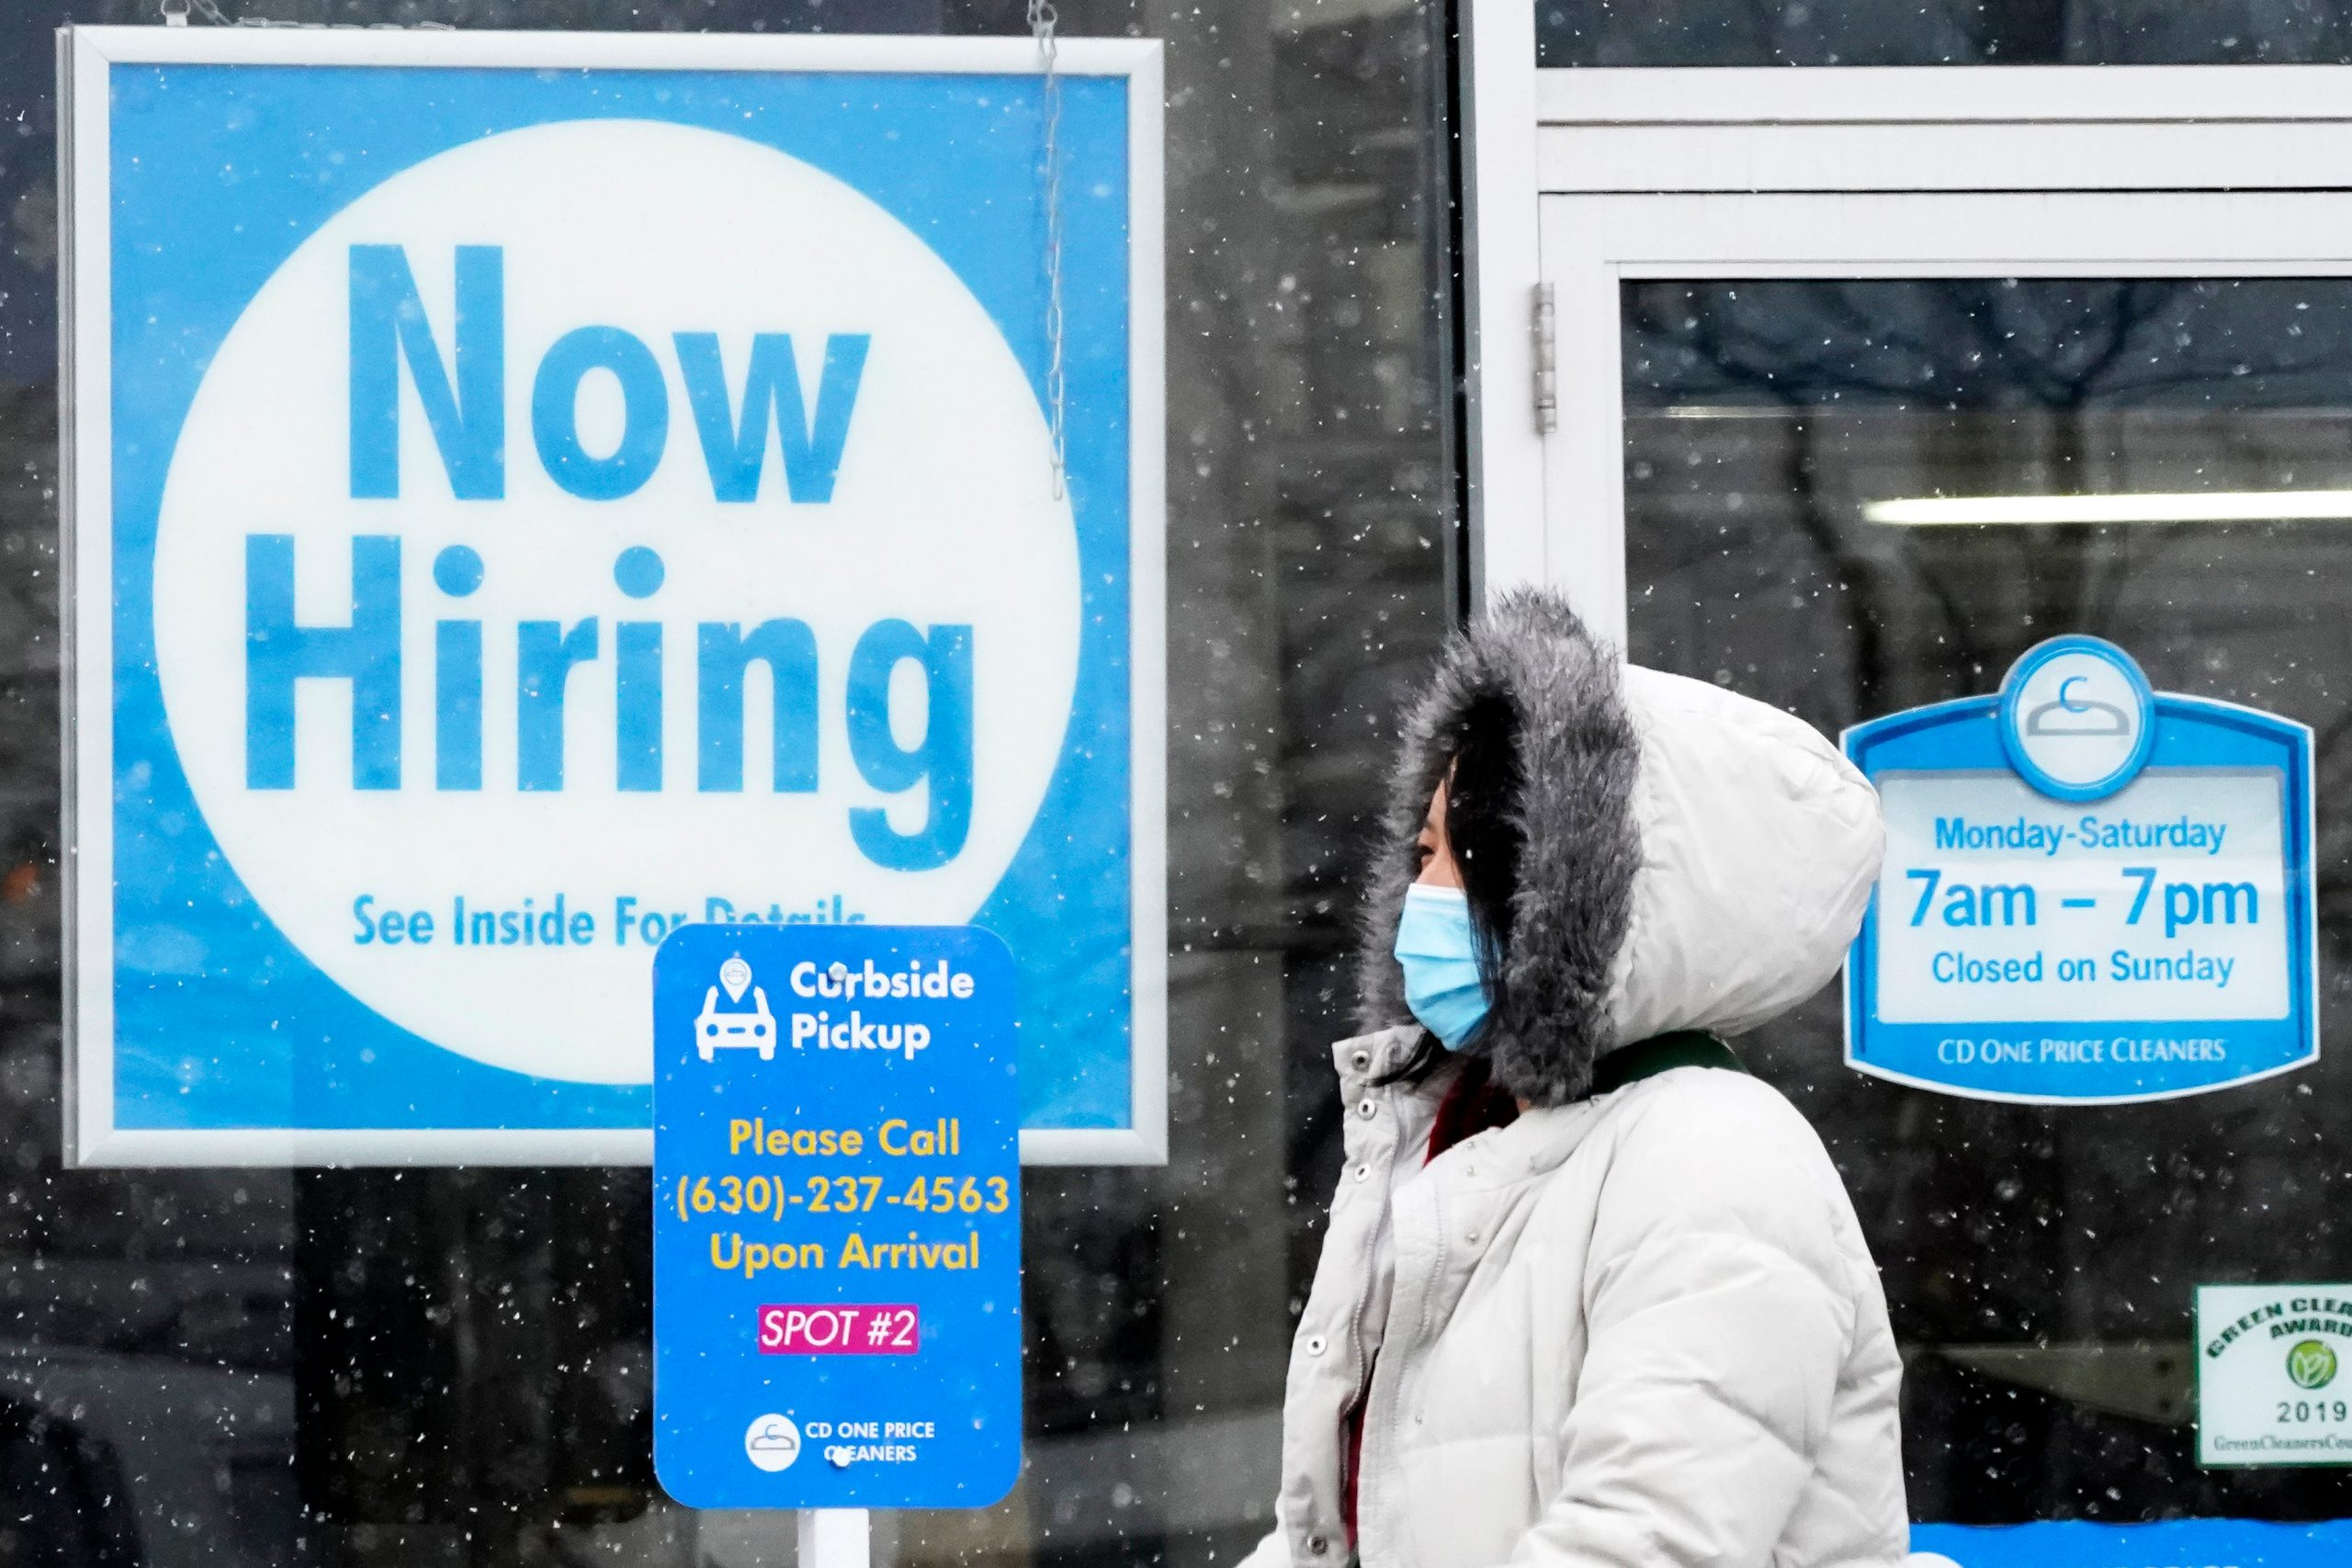 As restaurants hire and COVID cases fall, the U.S. economy gains 379,000 jobs in February